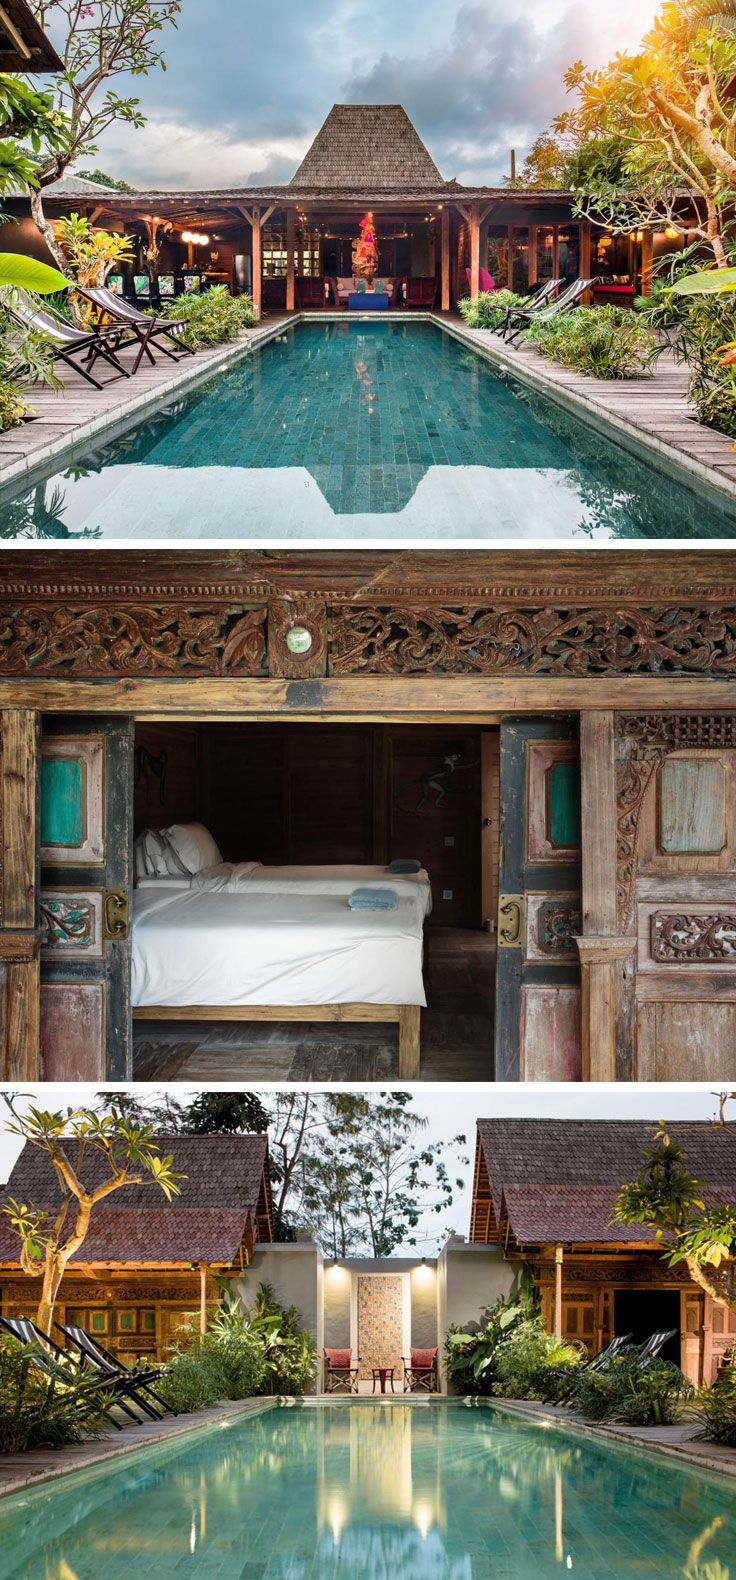 Left my heart here. Really really want to have this kind of home. Bali Unique Villa Gambar #Joglo #style